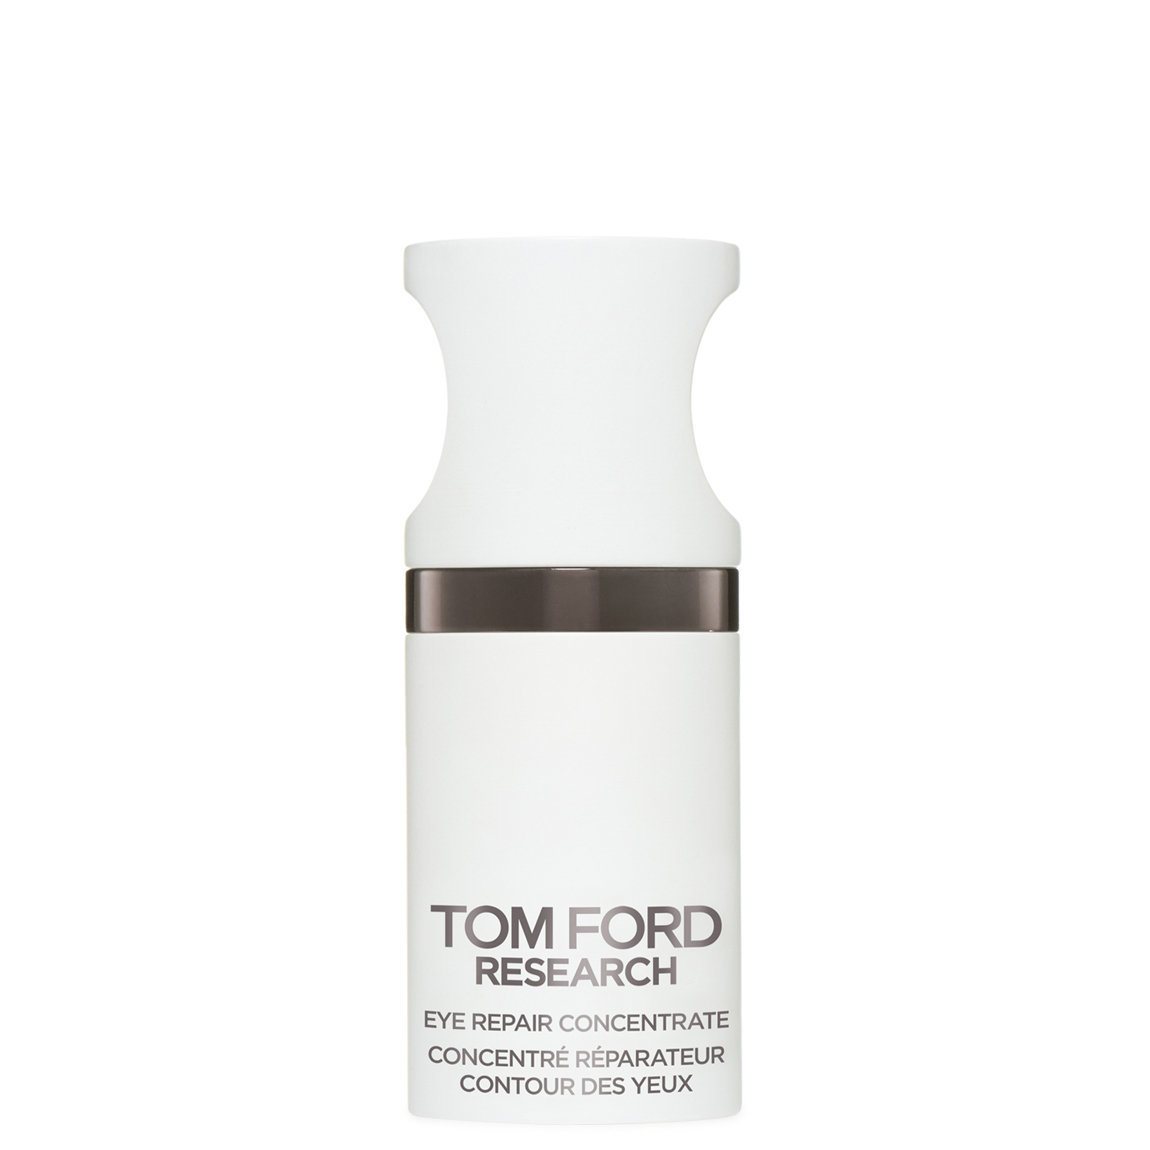 TOM FORD Research Eye Repair Concentrate product swatch.